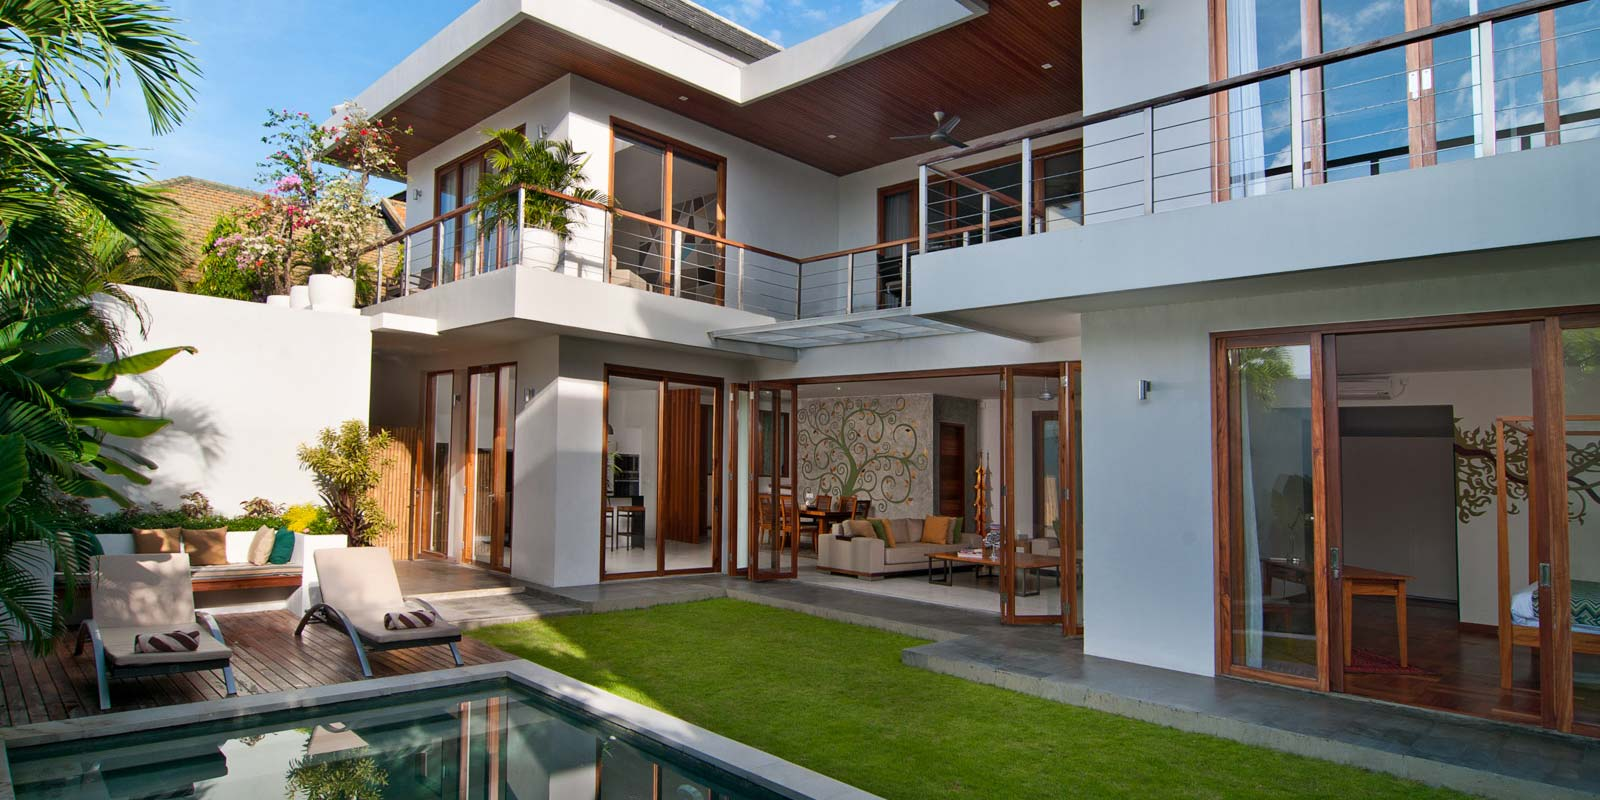 Best Architects in Bali